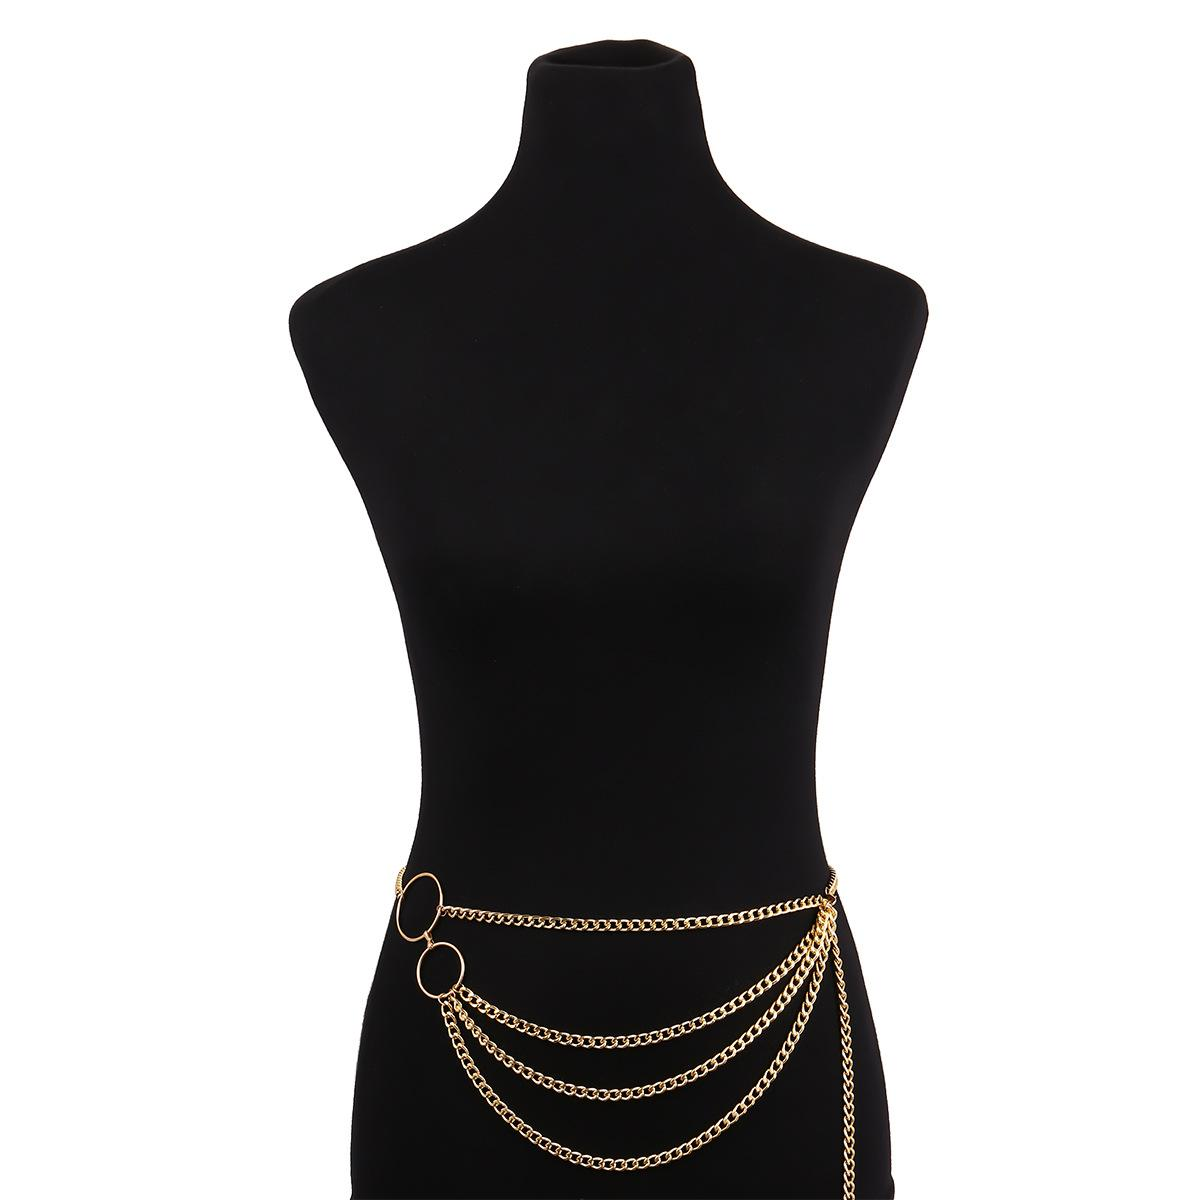 Bohemia vintage gold silver plated waist chains body jewelry vintage multilayer simple dance yoga alloy belly chains wholesale for women